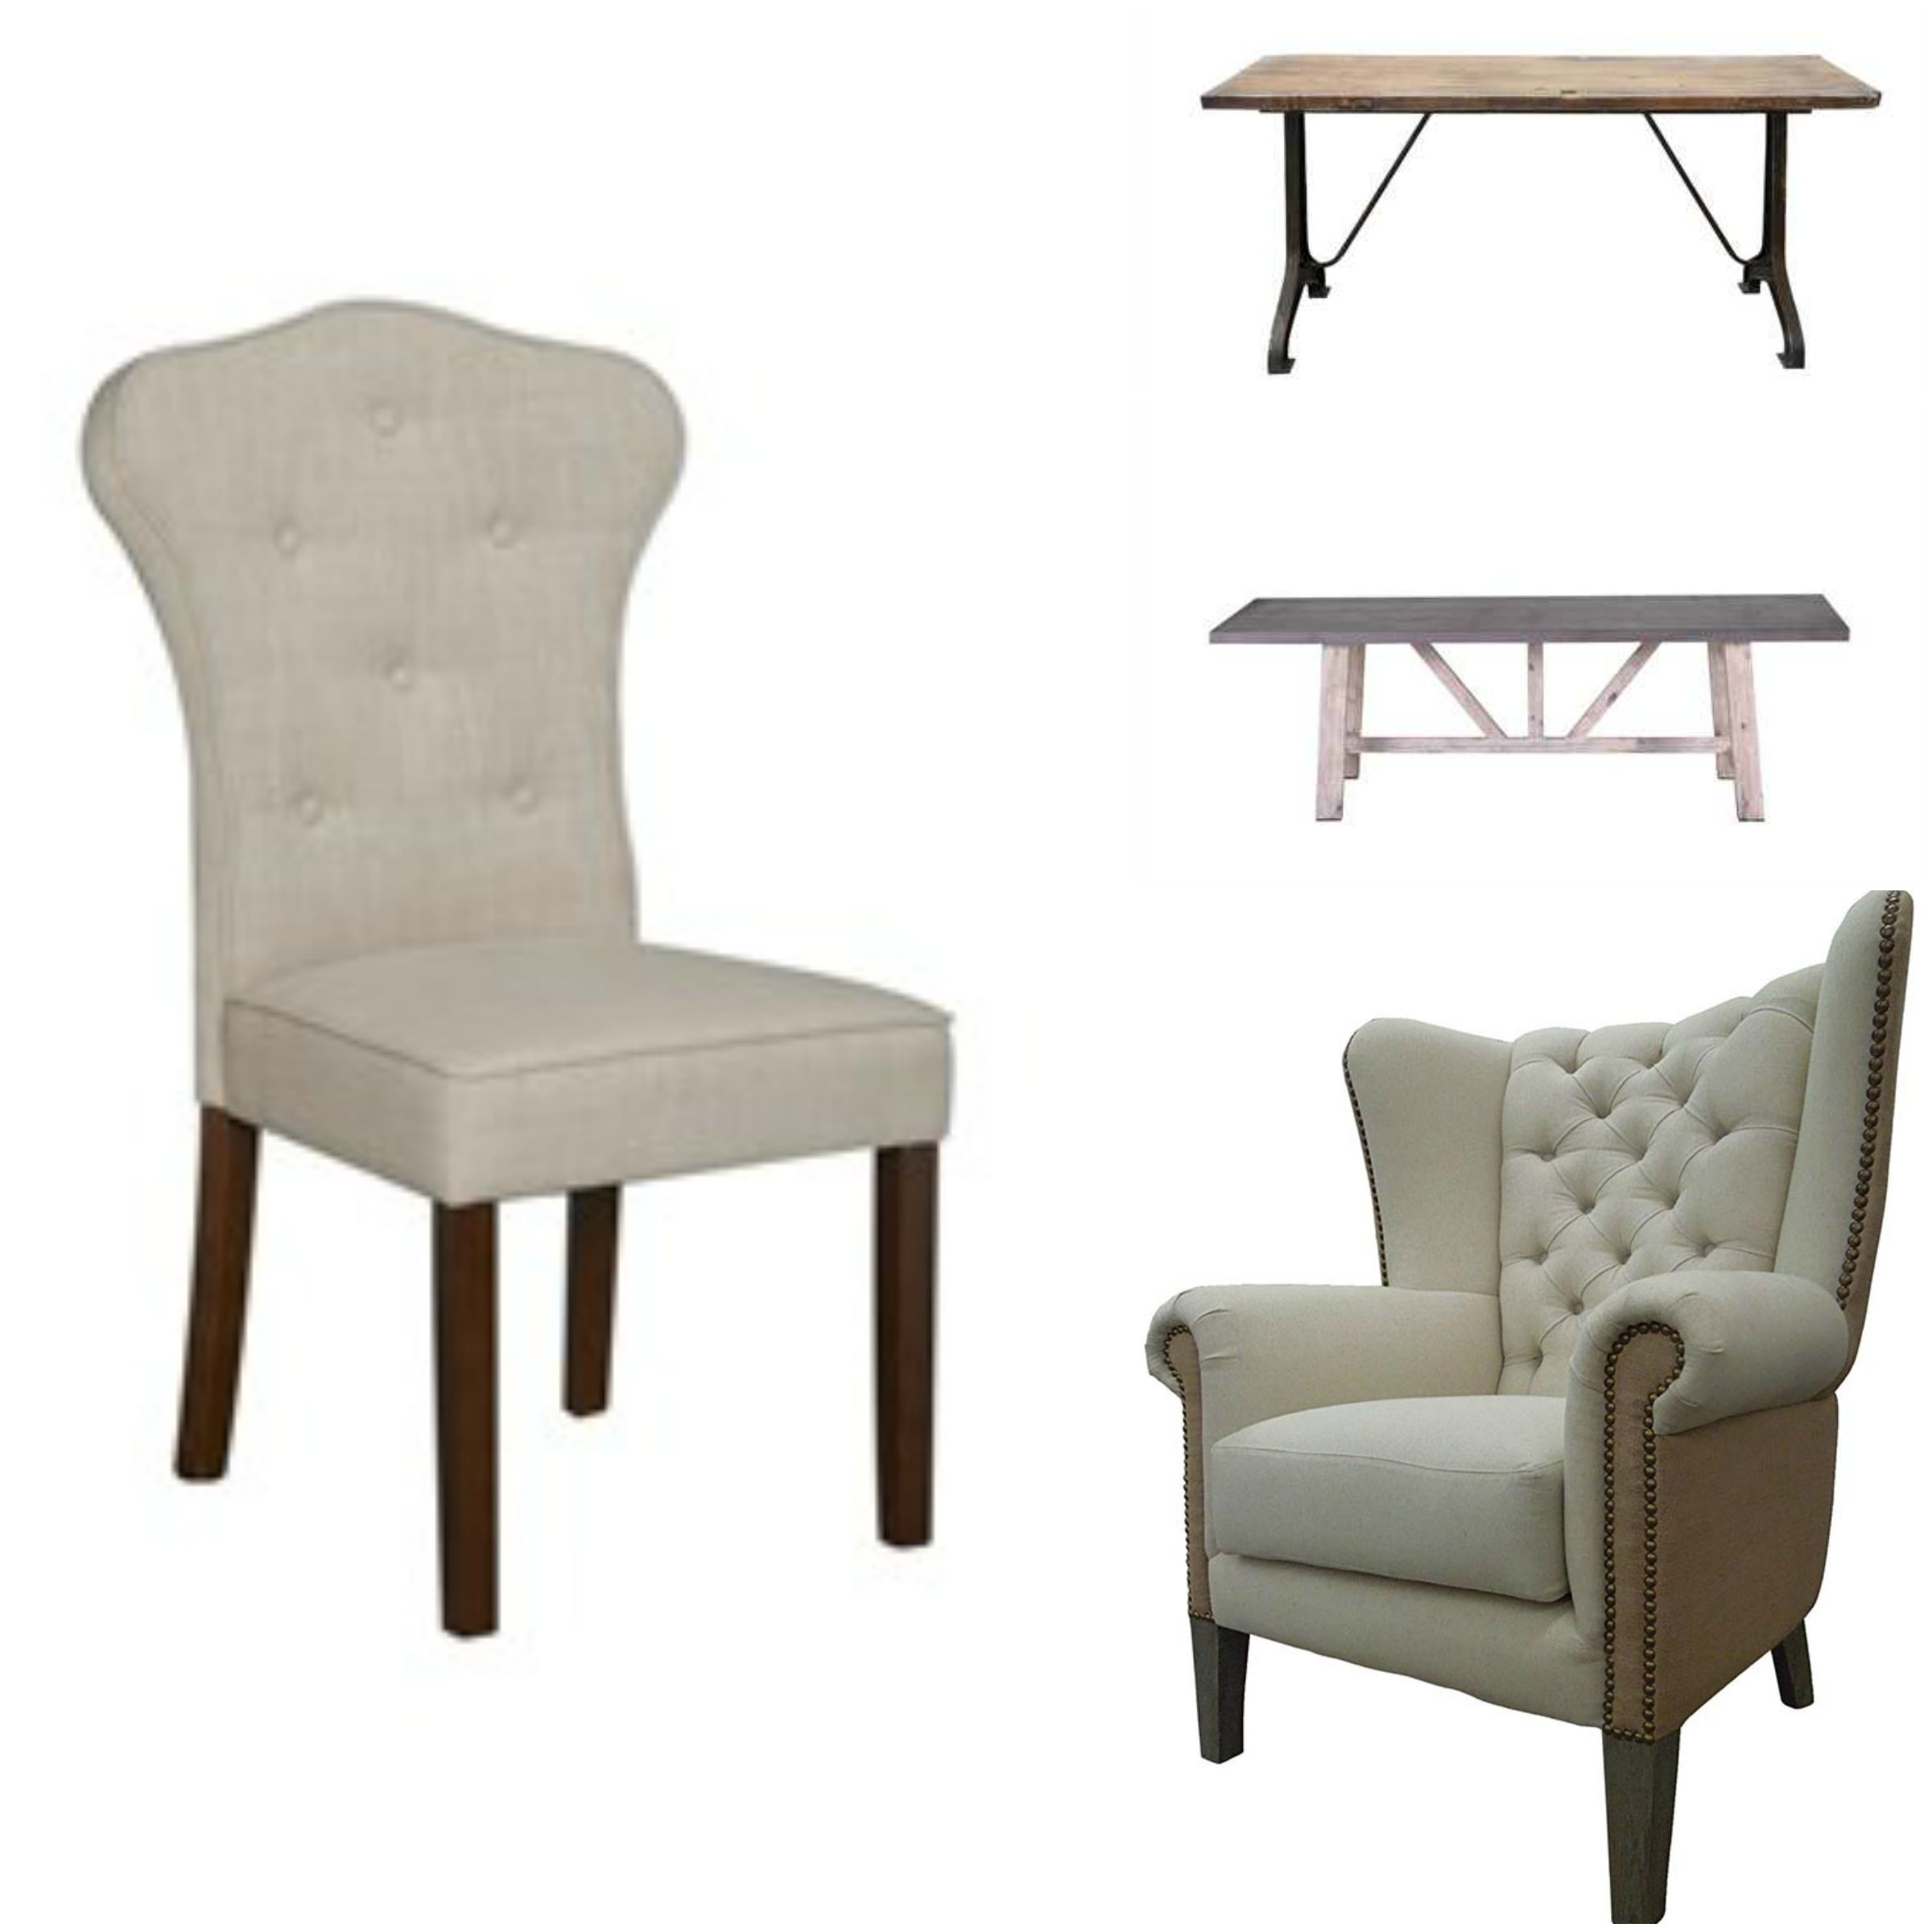 Come in NOW thru Sunday Nov. 15th and receive 25% OFF  All dining tables & dining chairs!  (More to choose from in store!)